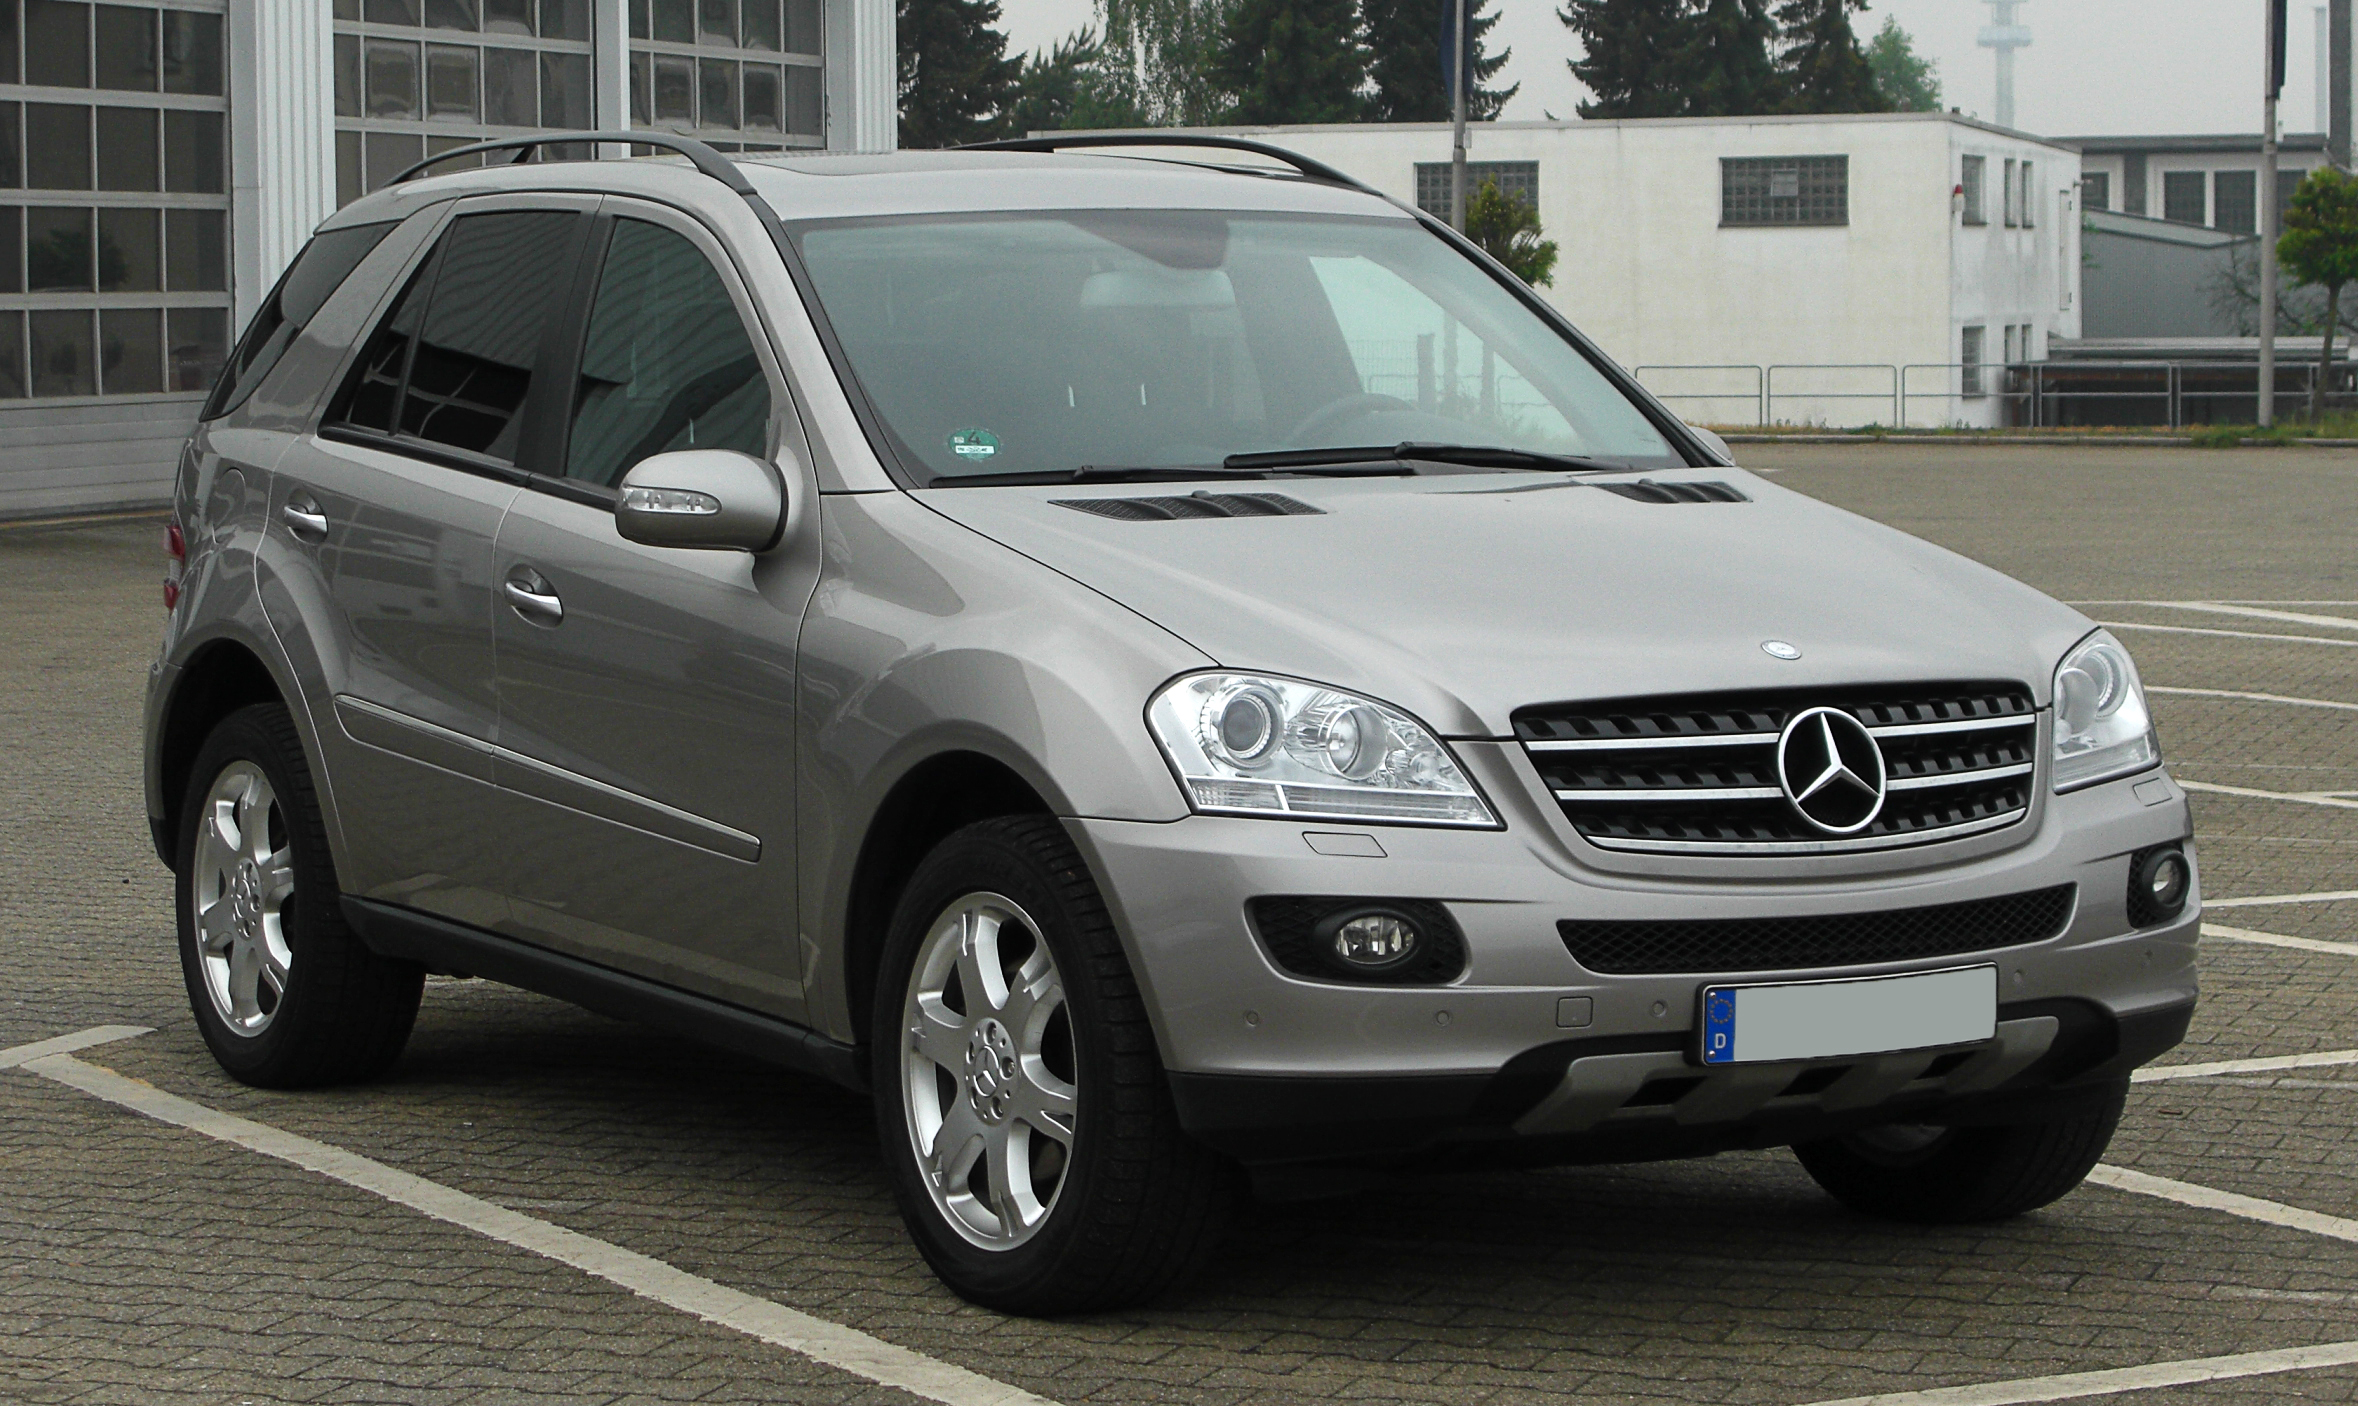 Mercedes-Benz ML 320 4Matic: Photos, Reviews, News, Specs .